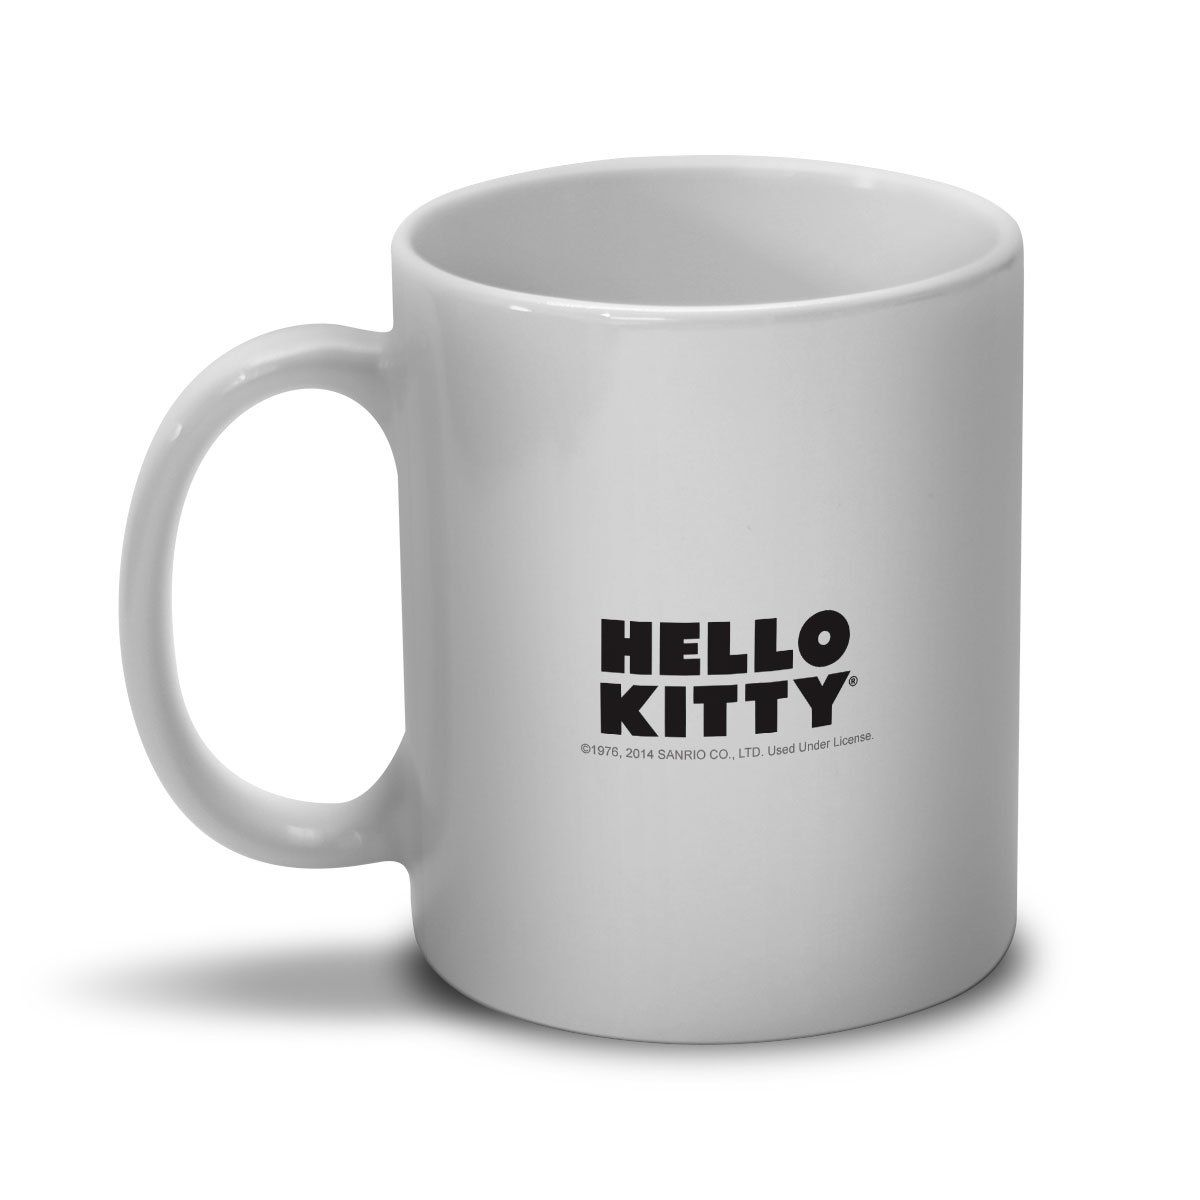 Caneca Hello Kitty Kitty White  - bandUP Store Marketplace